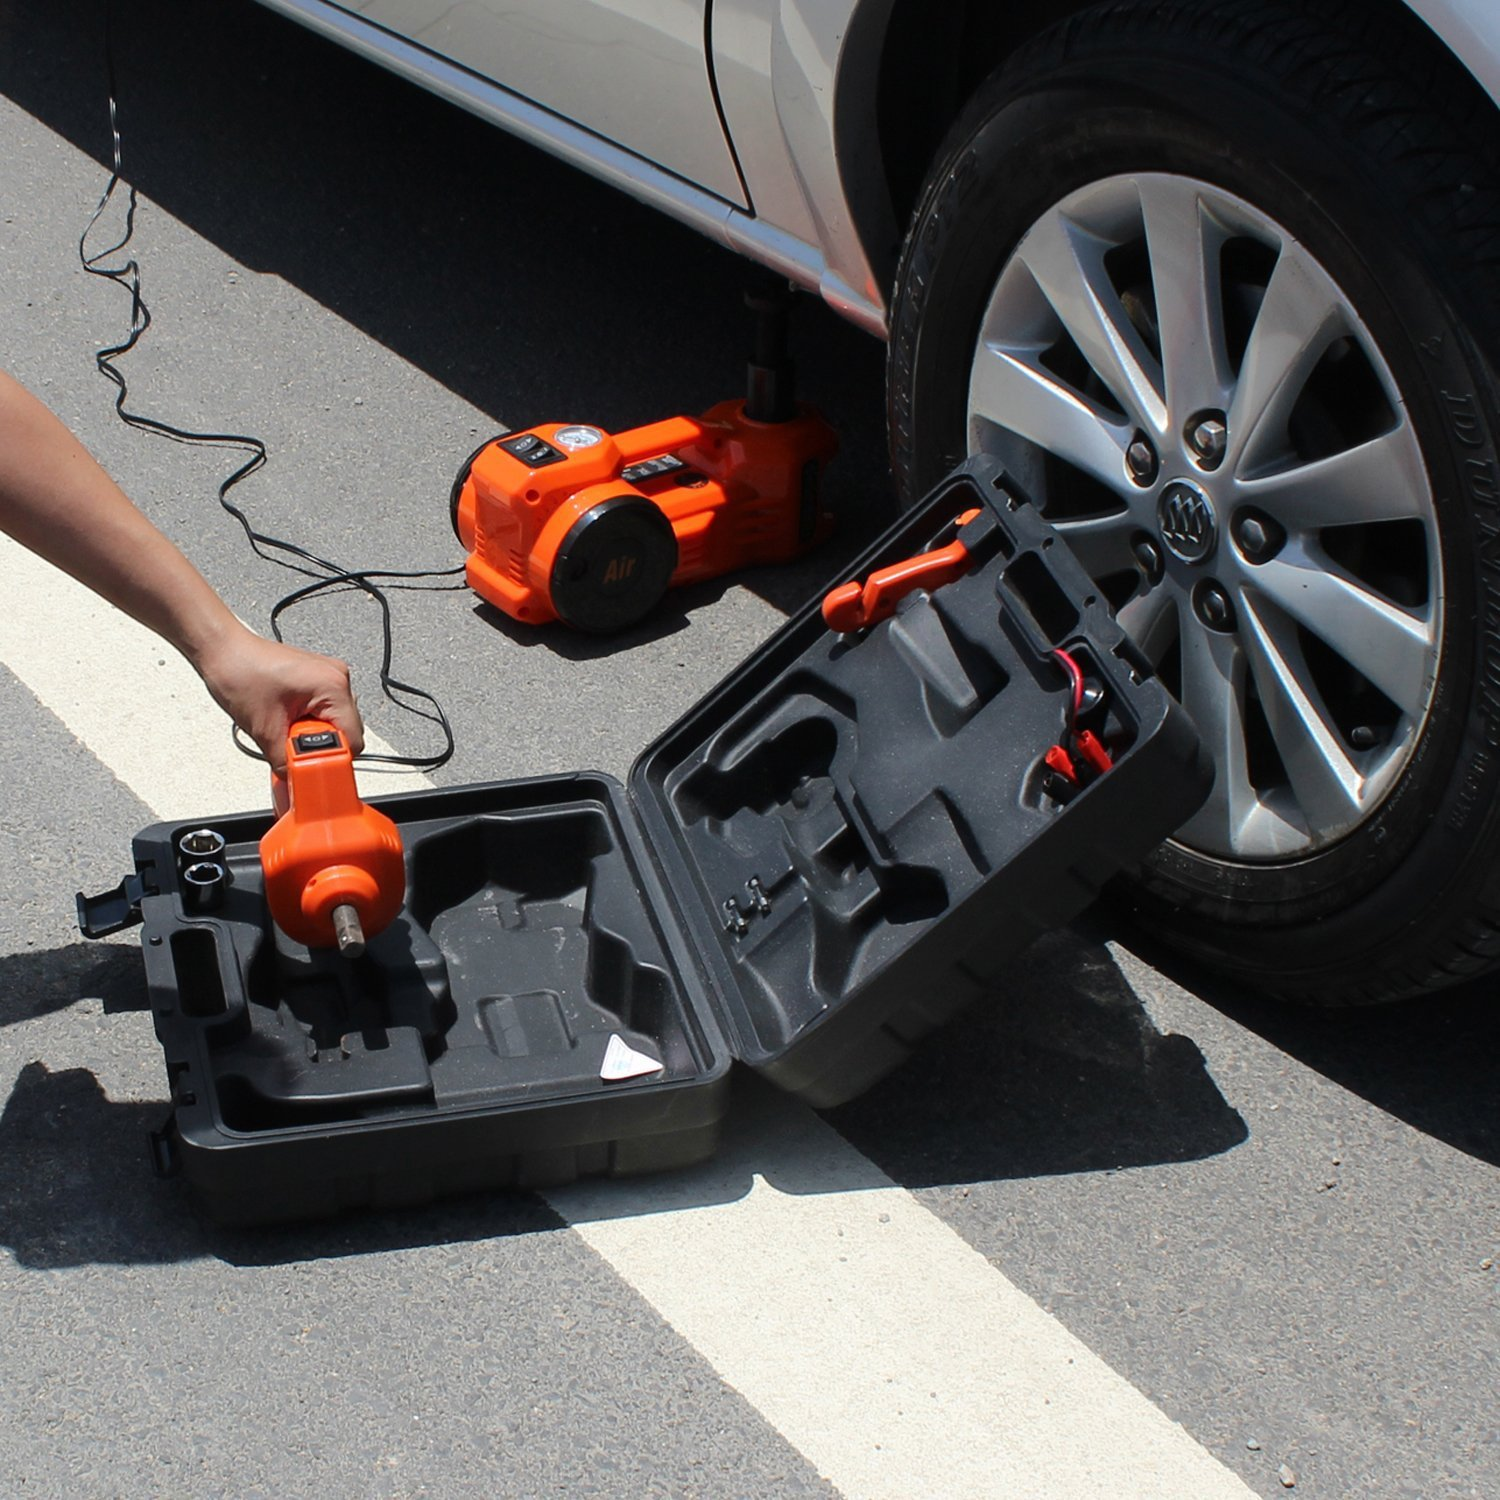 12V DC 1 Ton Electric Hydraulic Floor Jack Set with Impact Wrench For Car Use (6.1-17.1 inch, Orange) by EAMBRTE (Image #1)